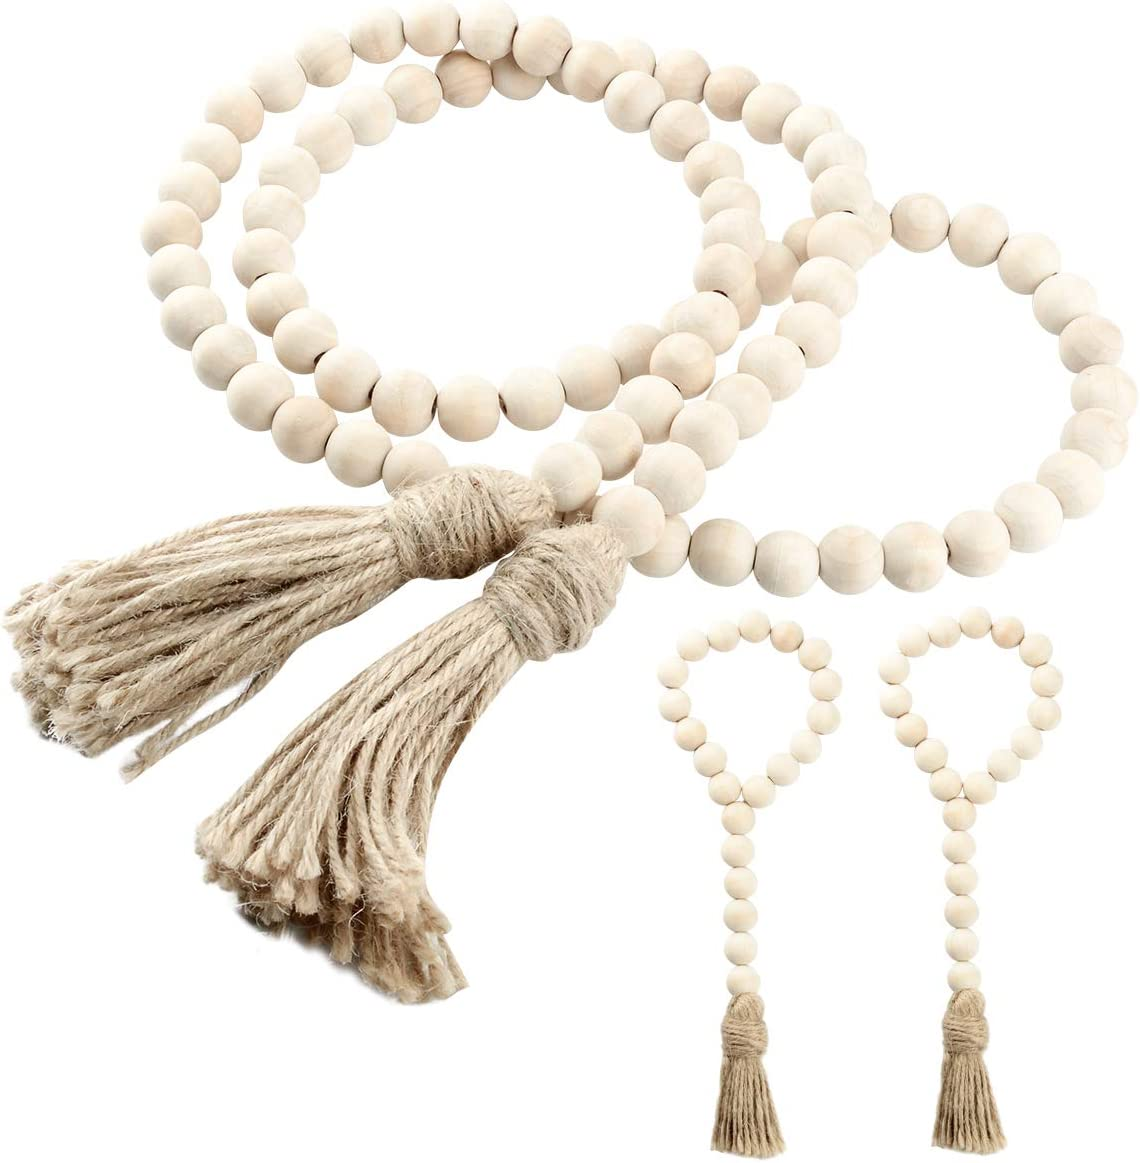 LEJHOME Wood Bead Garland, 3PCS Tassels Farmhouse Beads for Wall Hanging Decor, Rustic Country Prayer Beads for Holiday Decoration